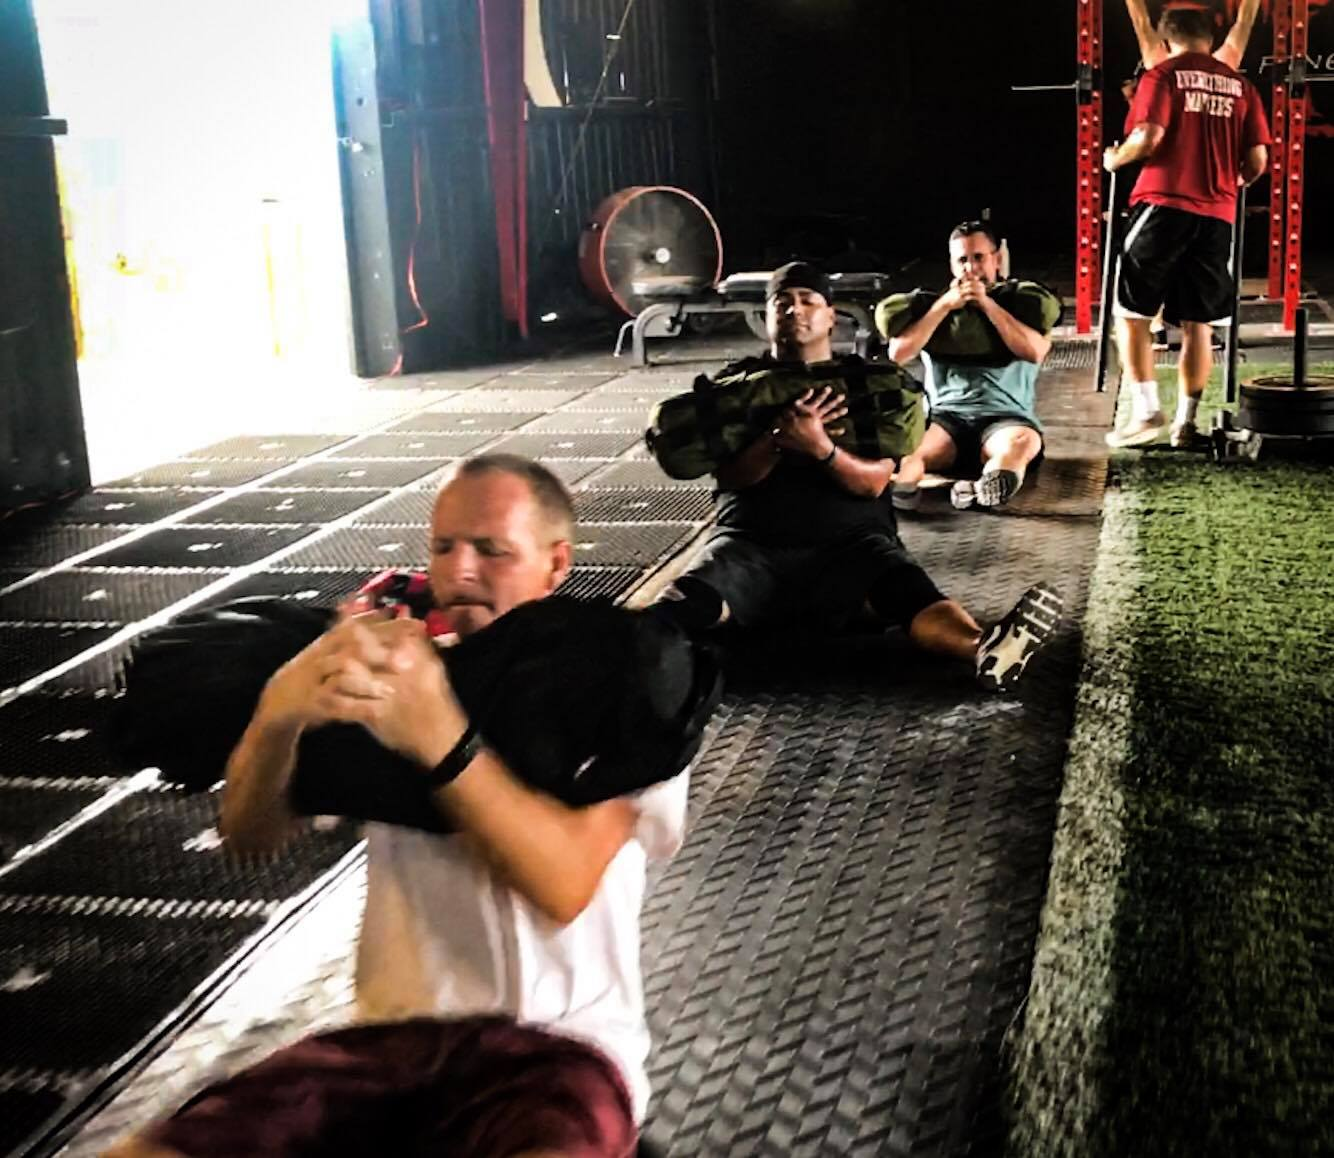 About — Primal Fitness